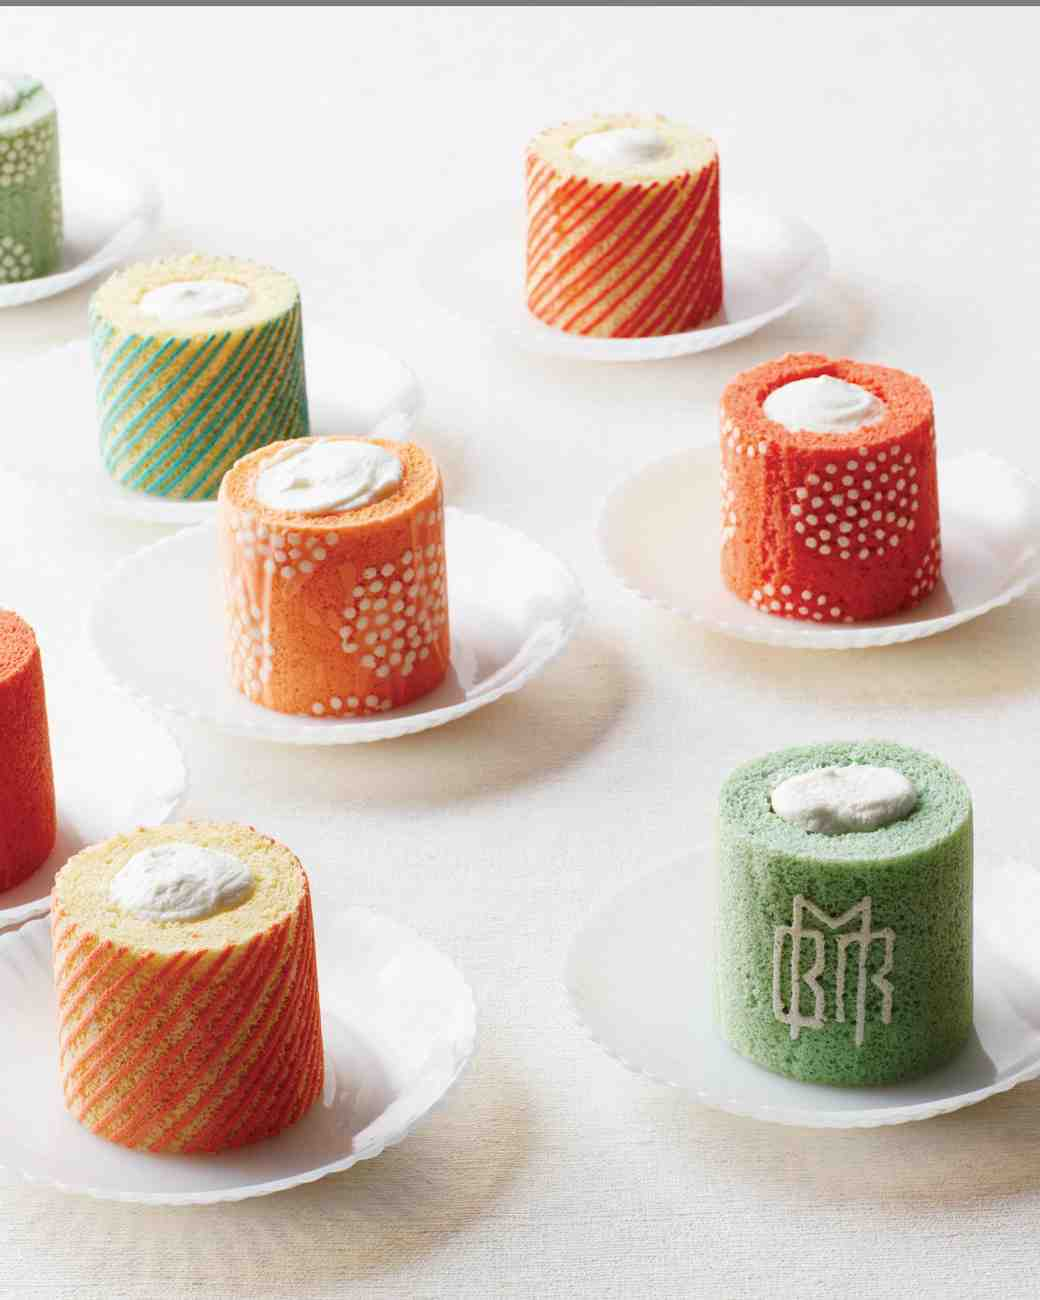 Green and Orange Japanese Sponge Roulades